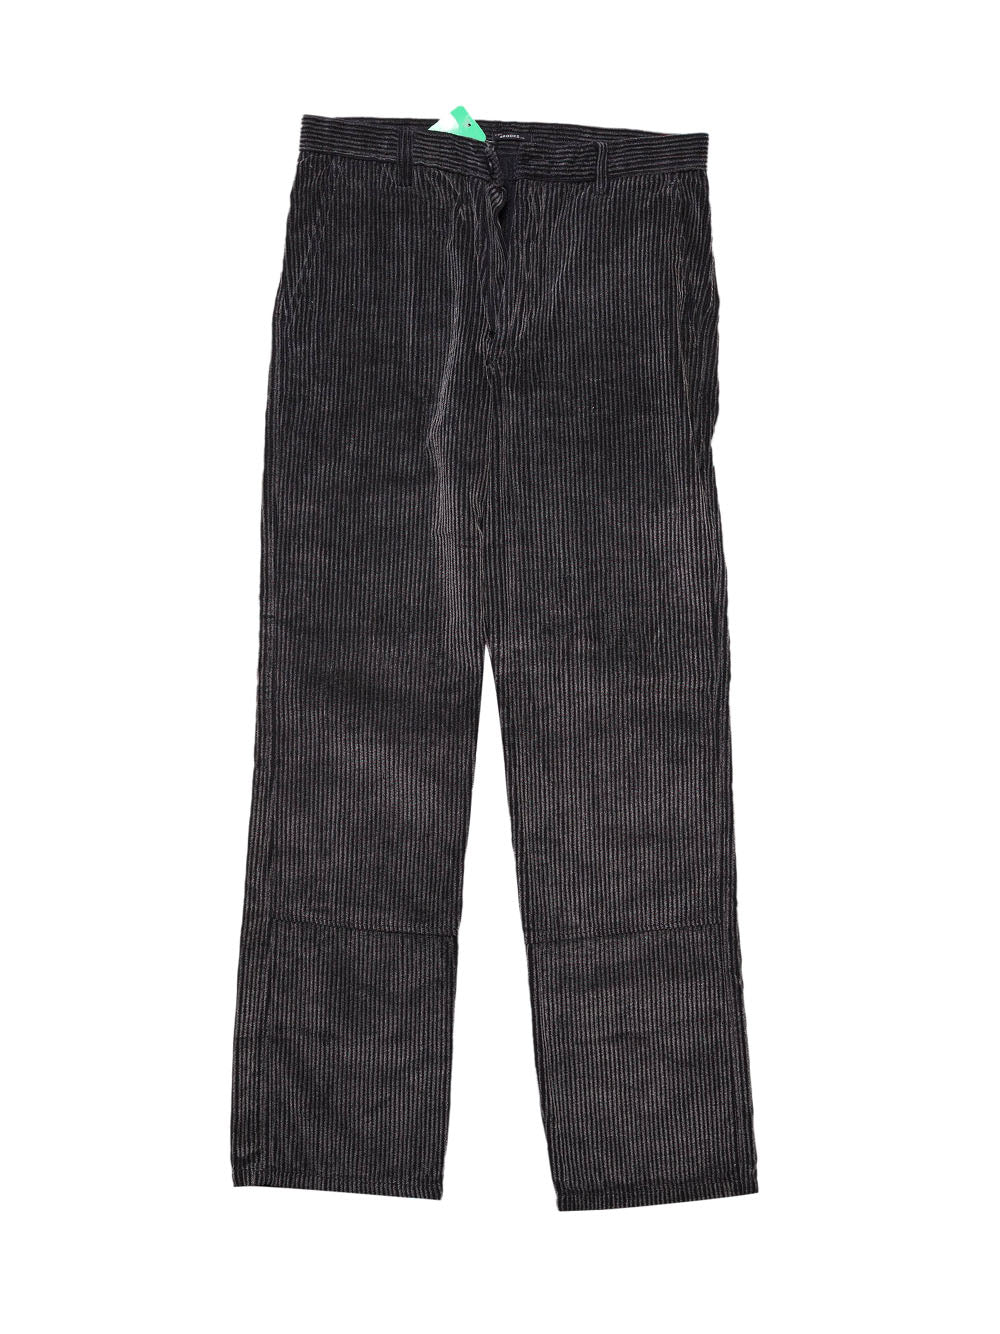 Front photo of Preloved brooks Grey Man's trousers - size 36/S